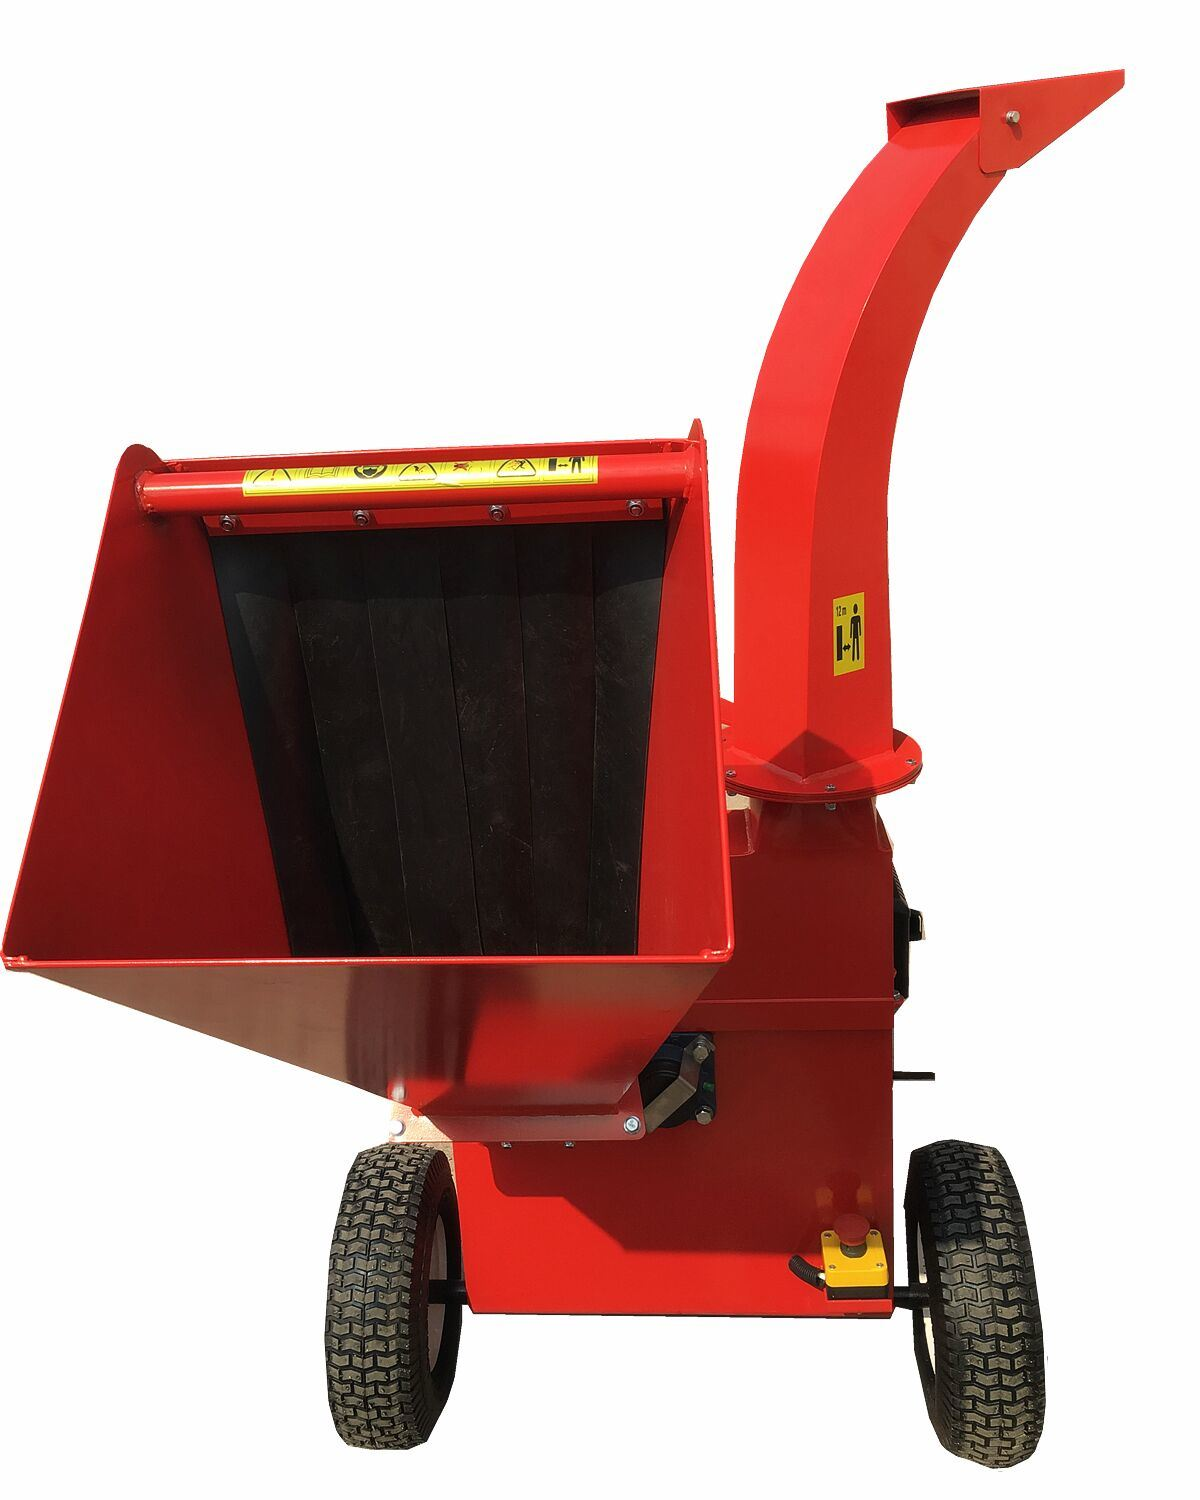 2017 New Design Hot Selling Product 13HP Wood Chipper/Branch Shredder/Wood Crusher